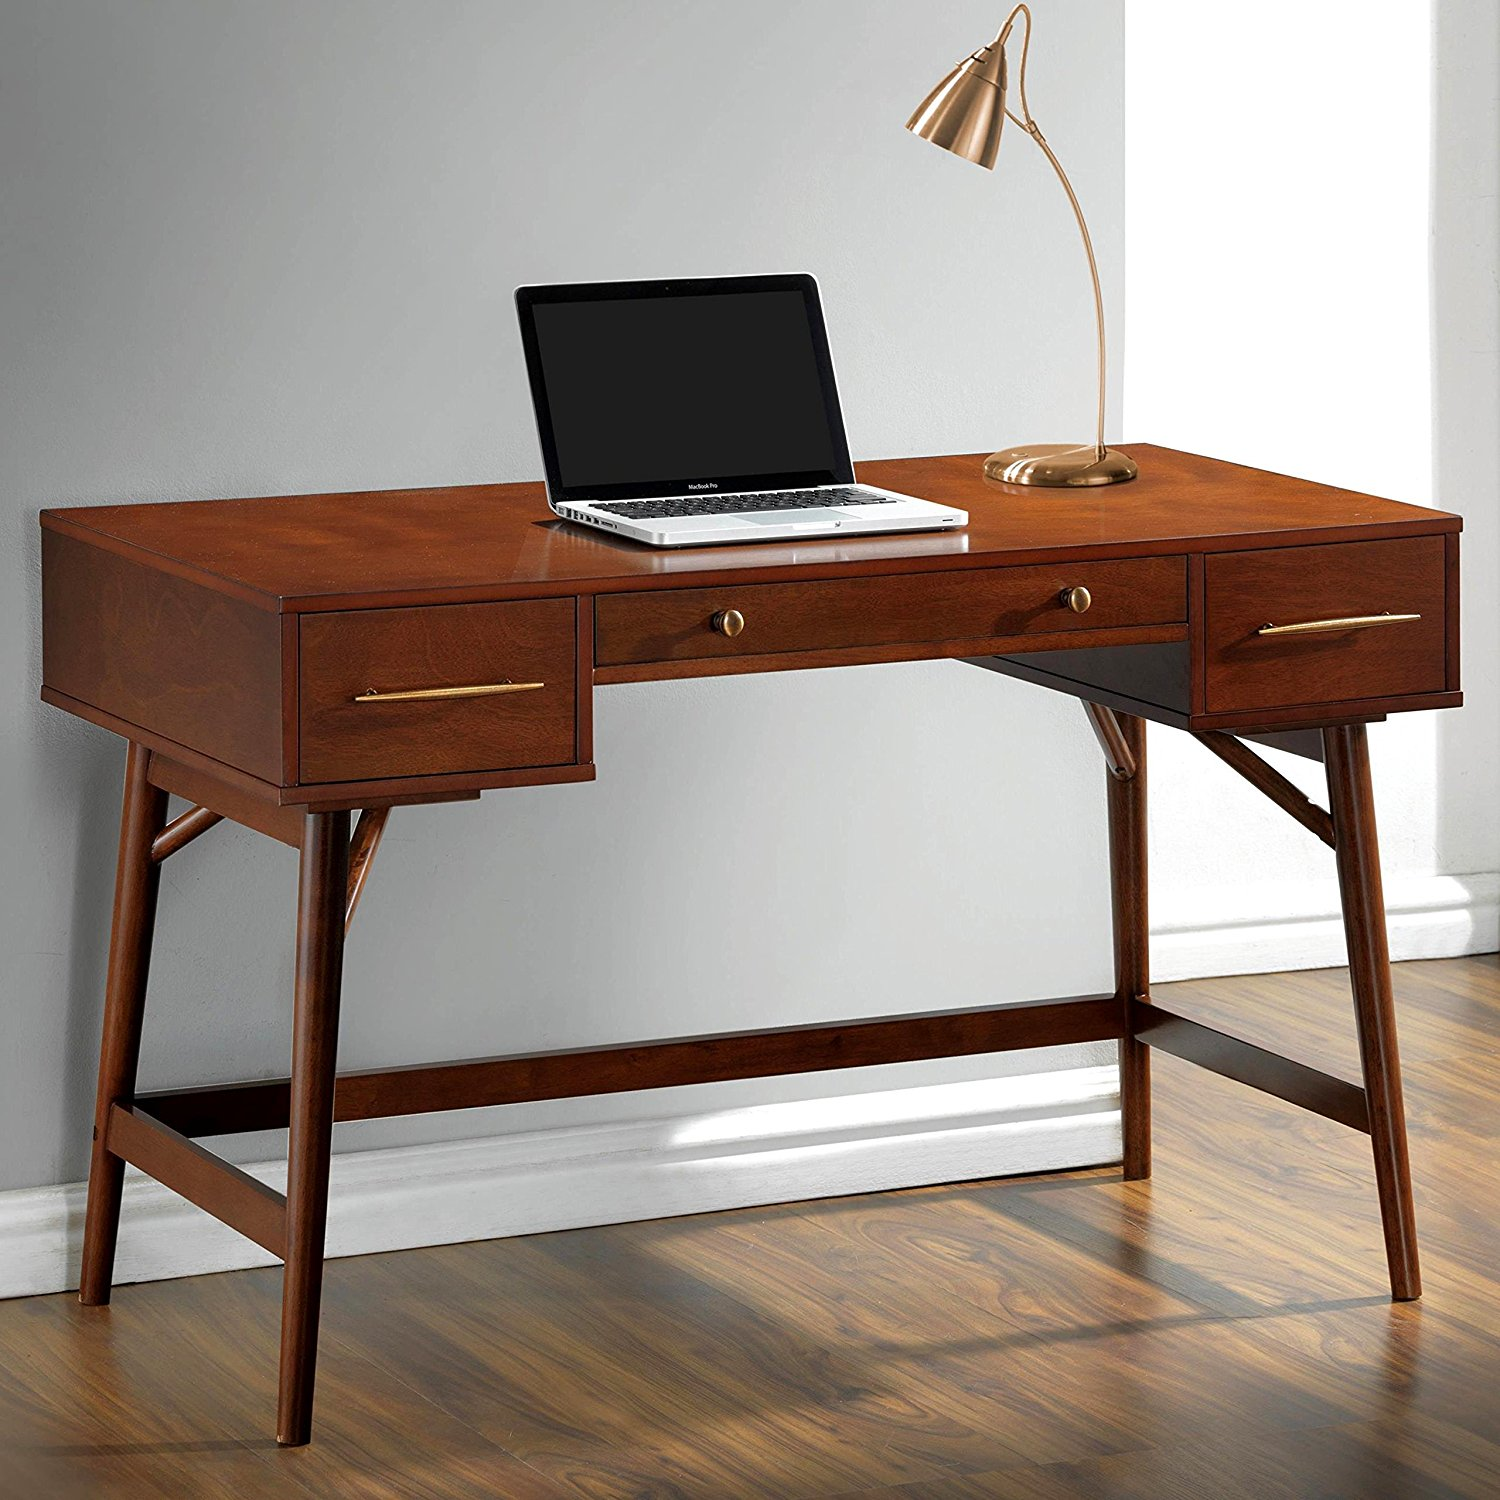 A Line Furniture Mid-Century Modern Design Home Office Writing/ Computer Desk with Drawers